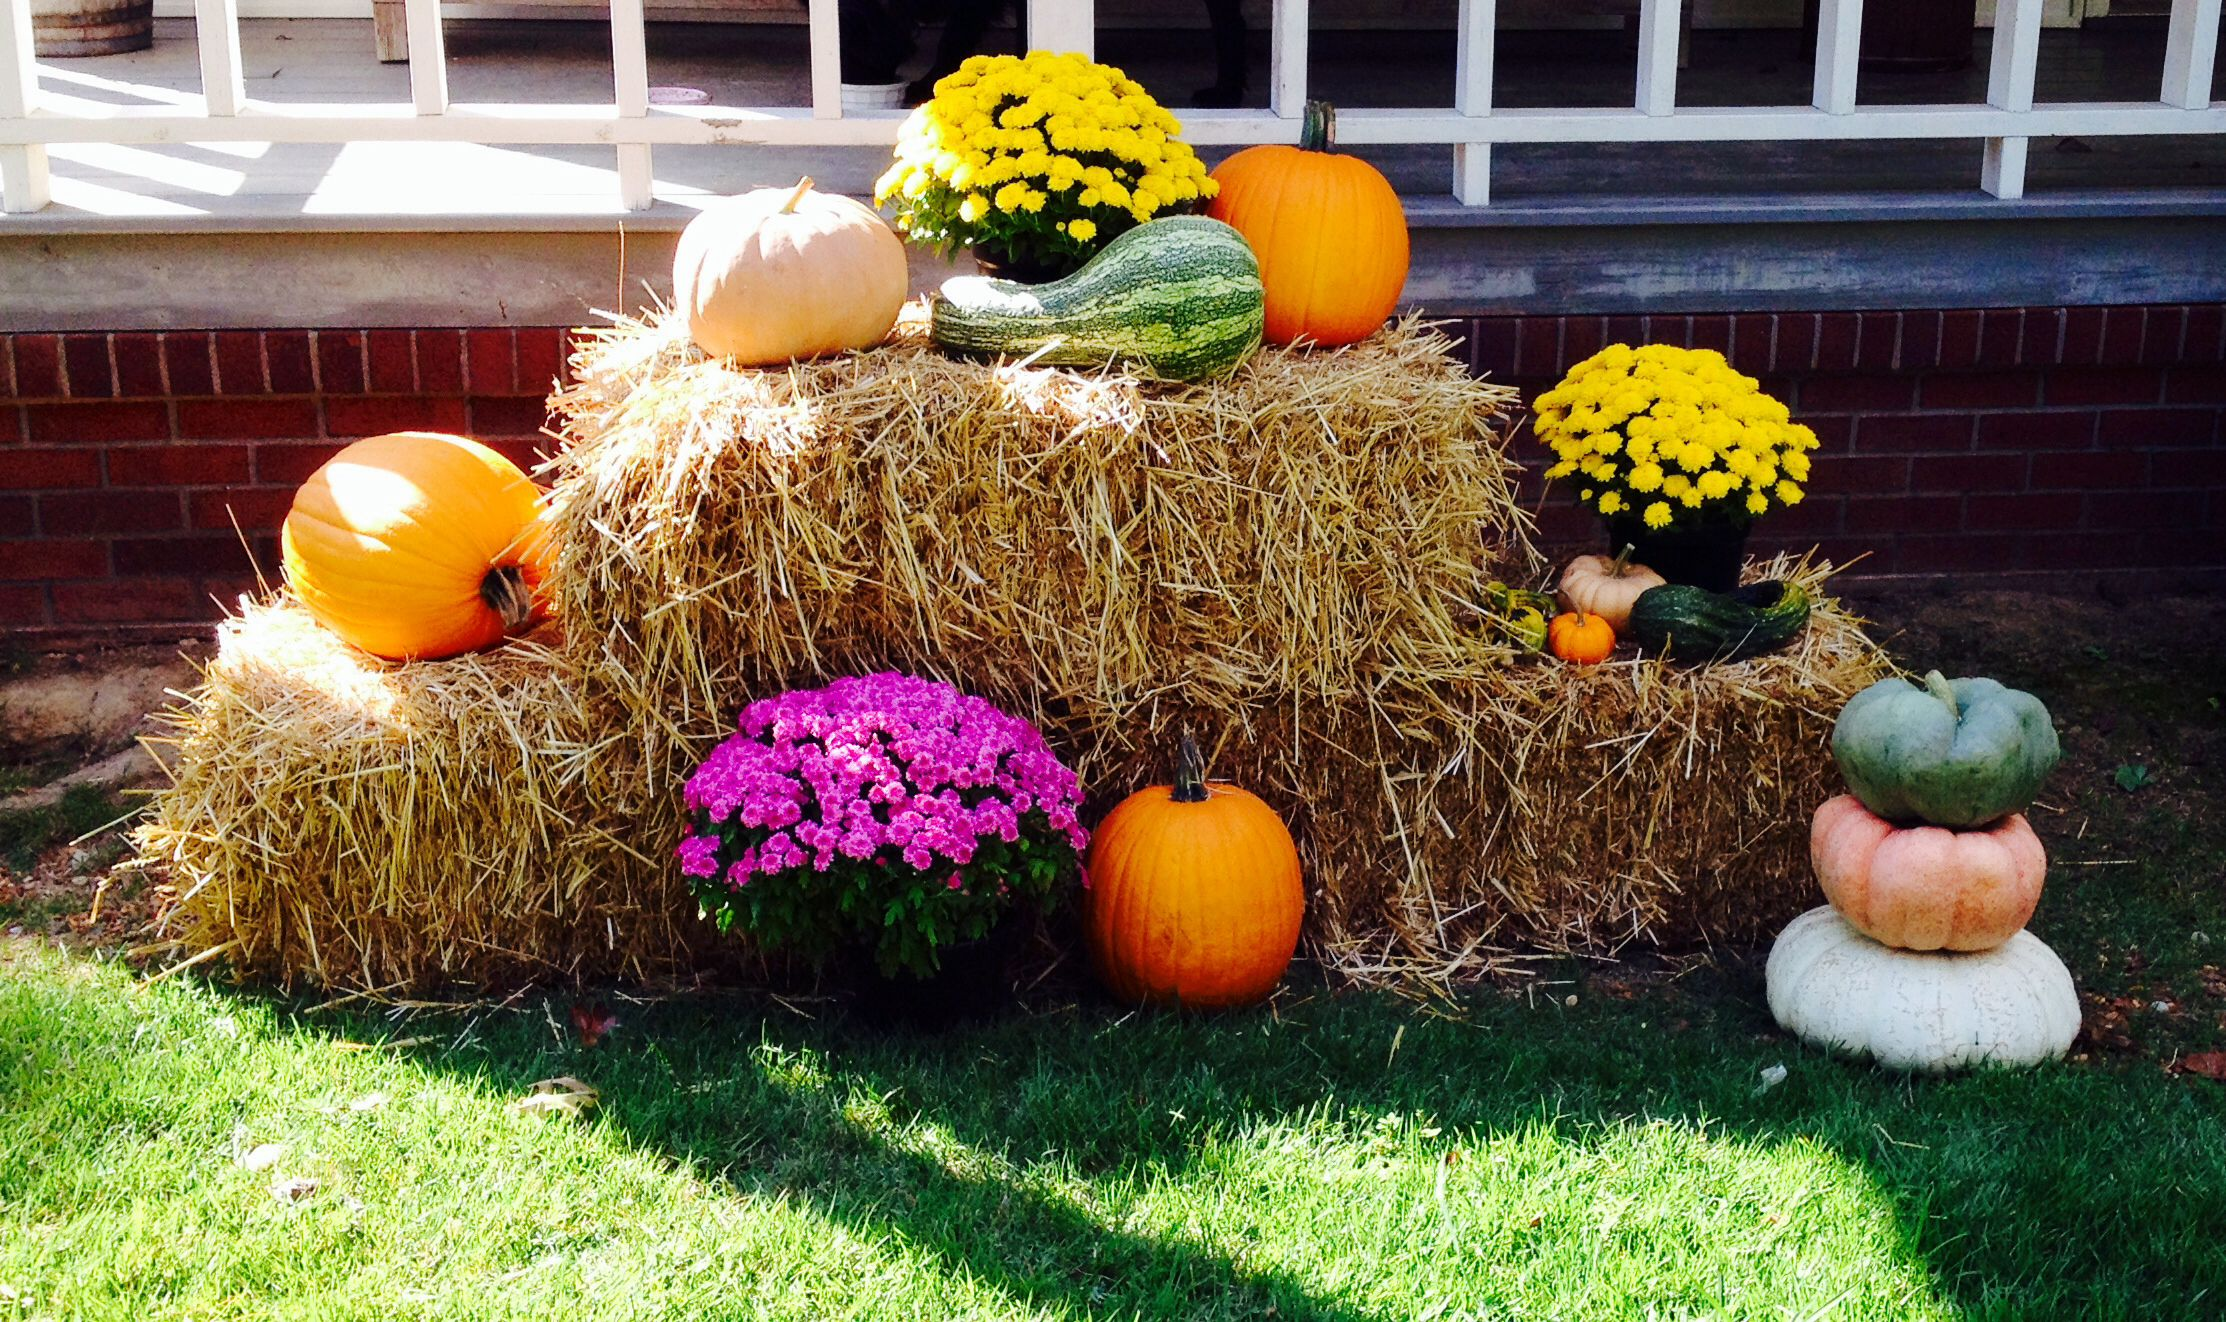 fall harvest decorations outdoors fall decor with hay bales fall yard decor  fall outdoor decor  fall decor with hay bales fall yard